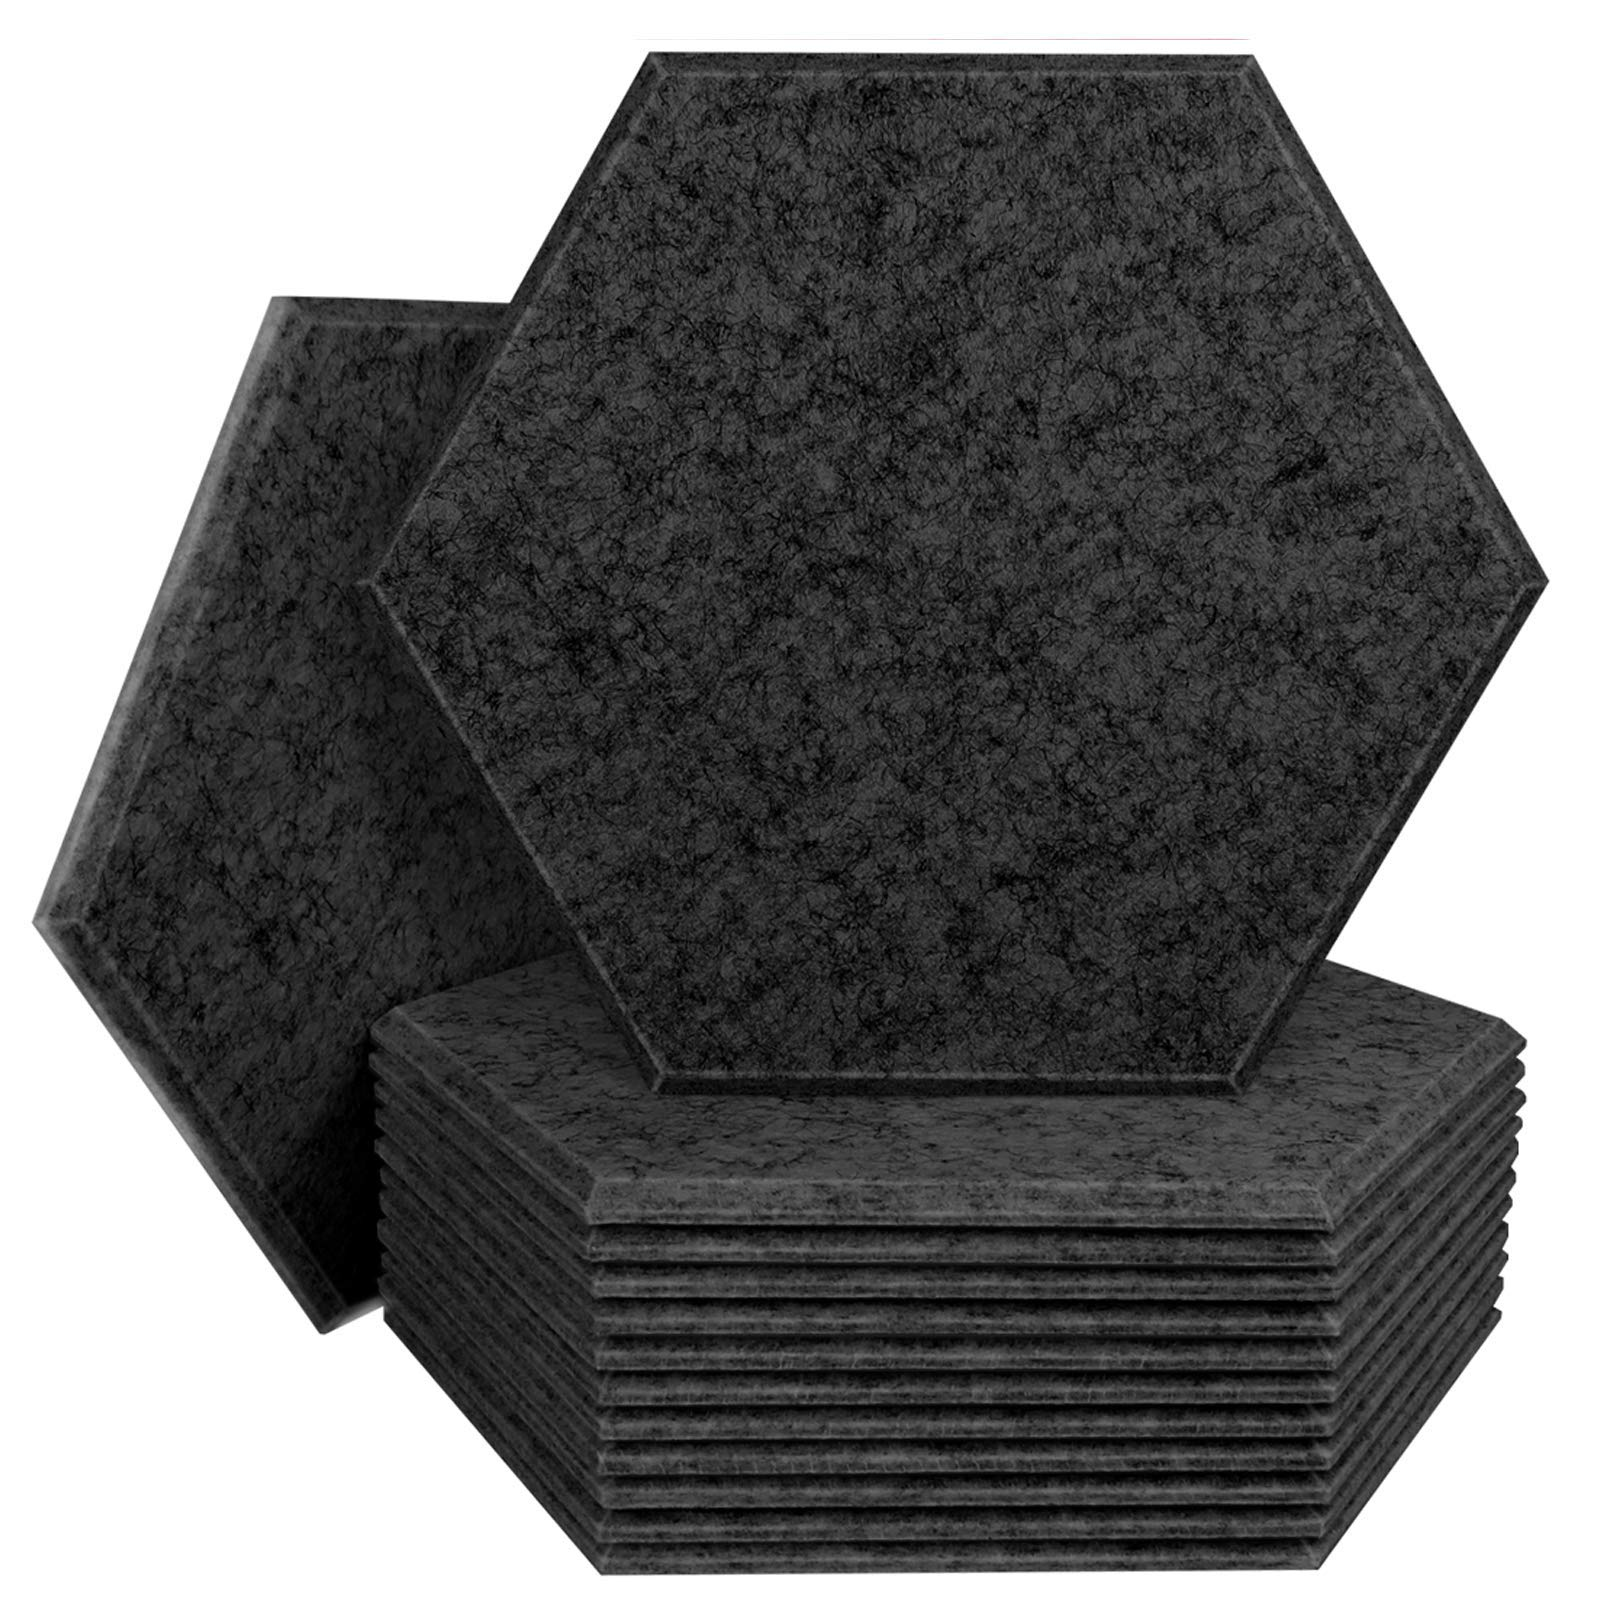 Multiple Colour, Sound deadening and Insulation Art Treatment with Beveled Edges, 8 PACK, Sesame black BUBOS New Acoustic Panels Sound Absorption Wall Tiles